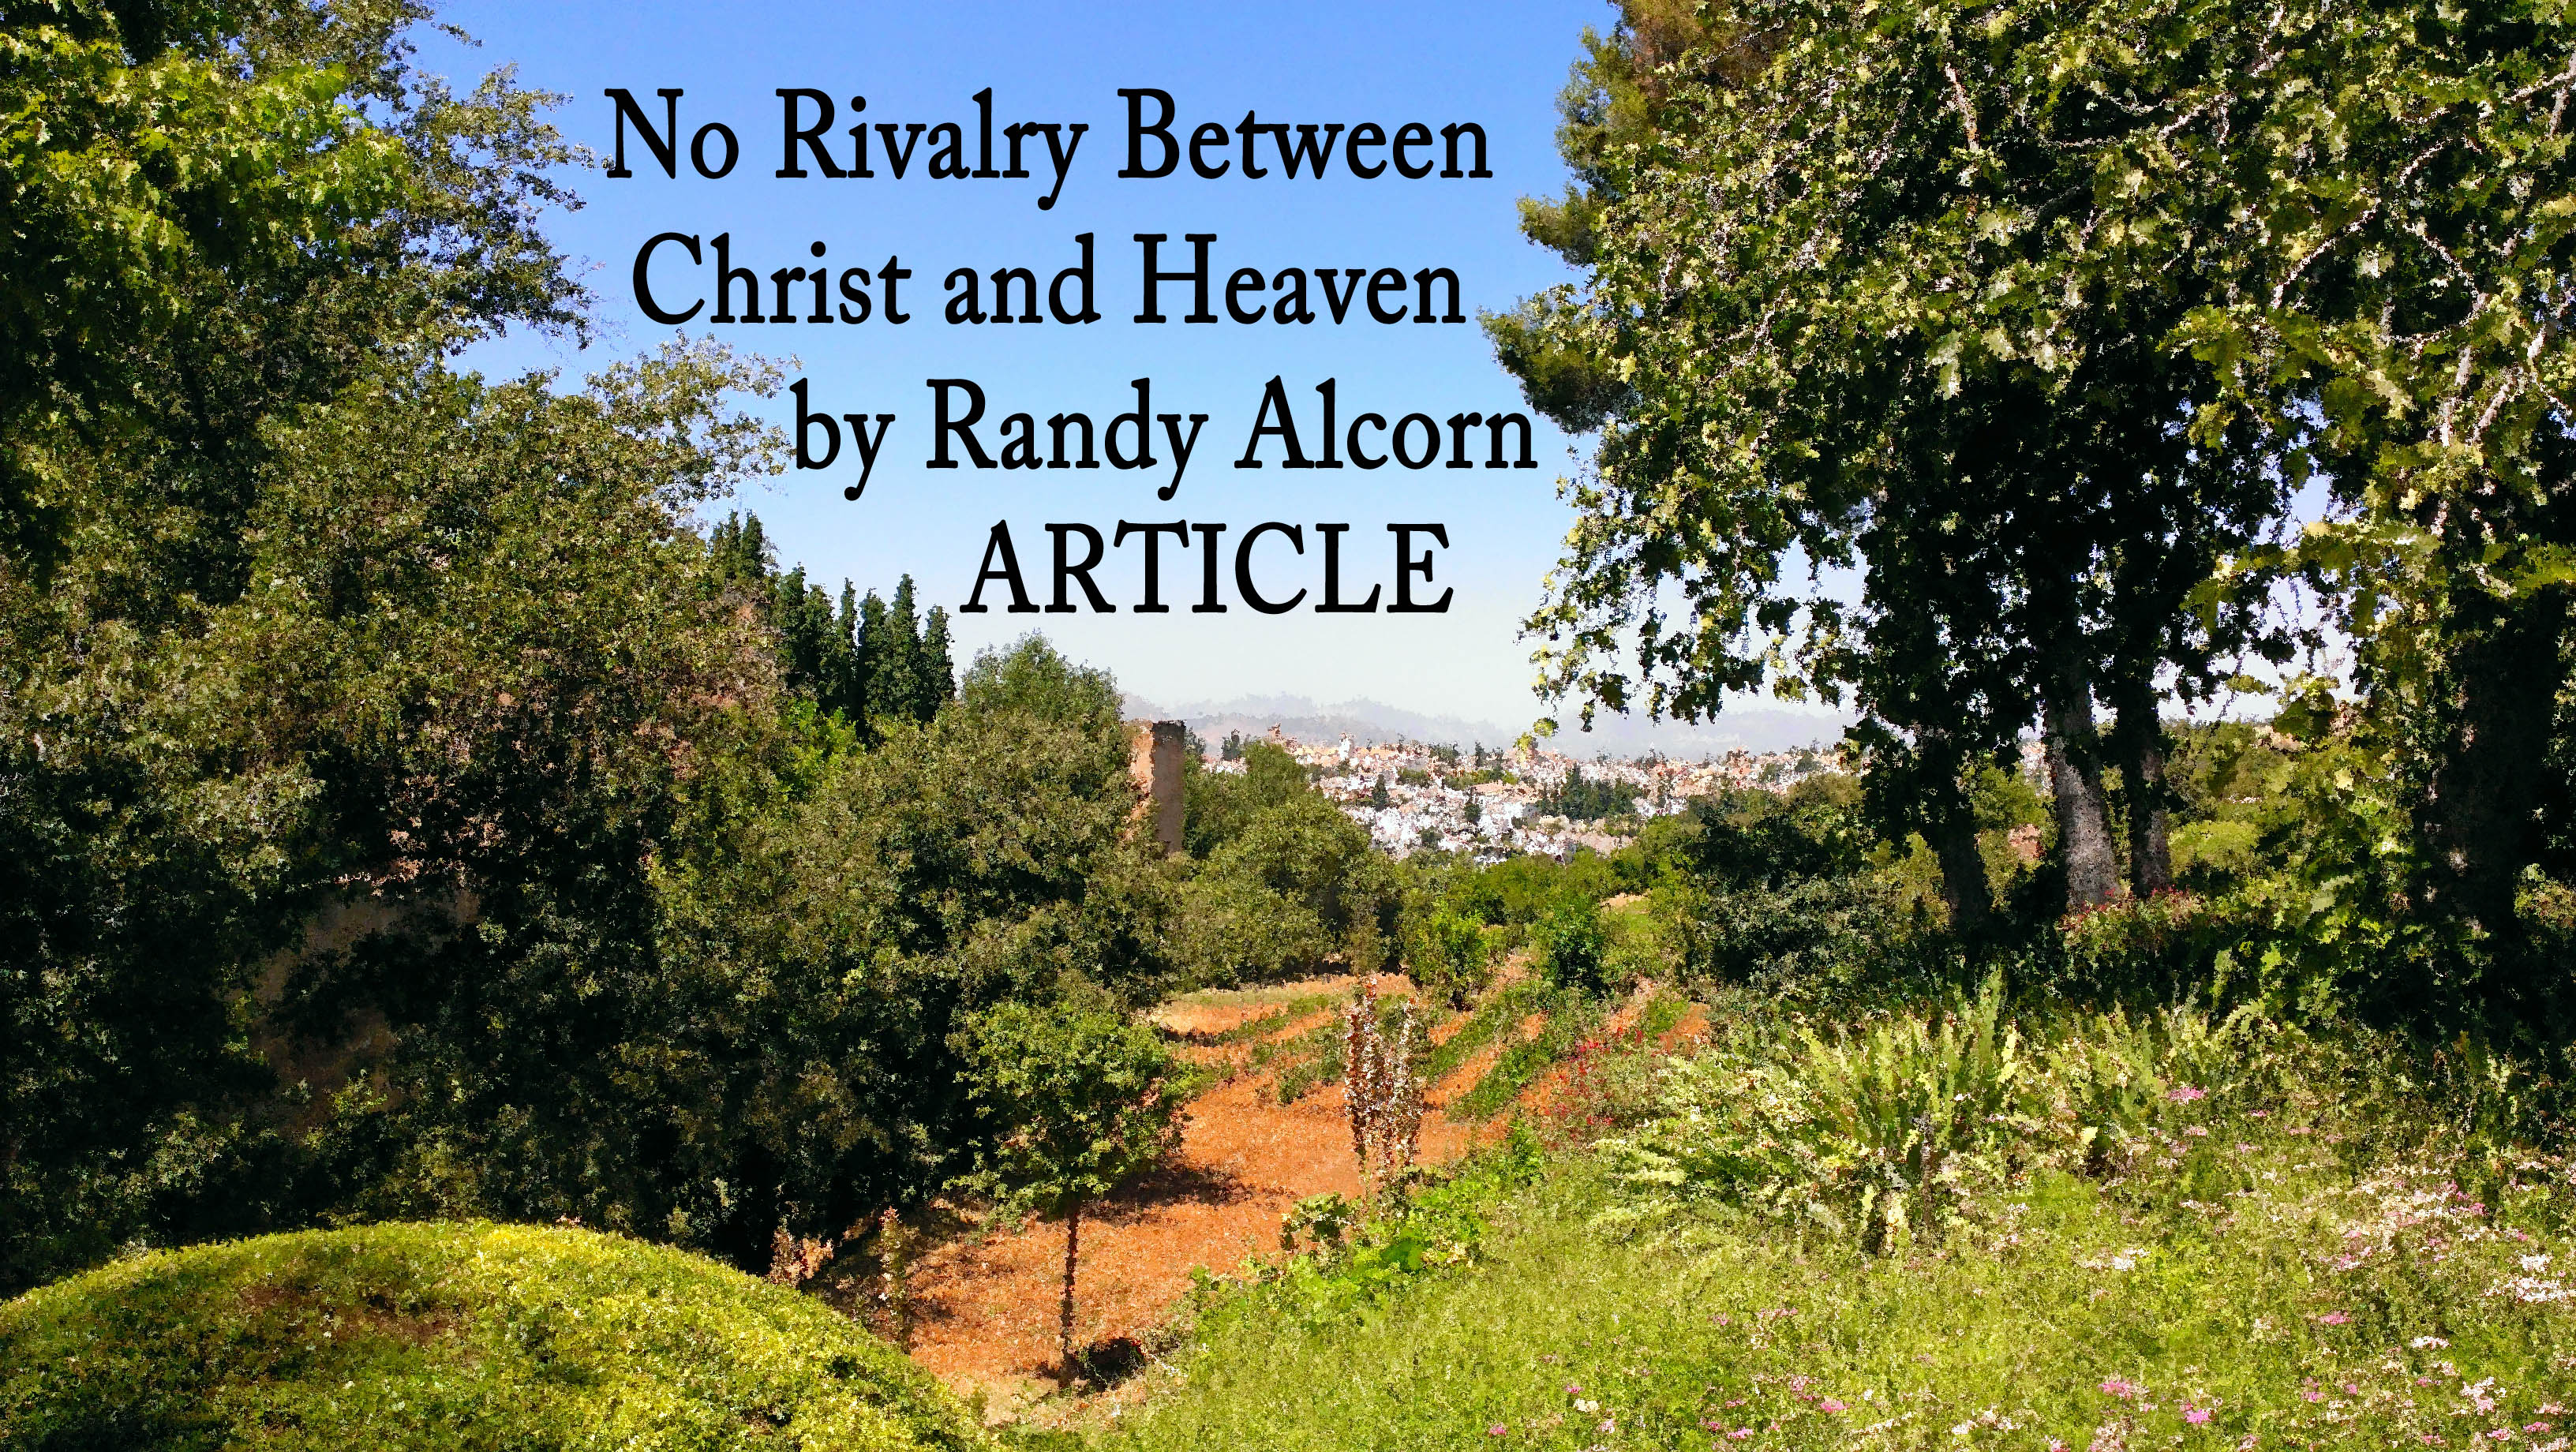 No Rivalry between Christ and Heaven – Randy Alcorn (Article)